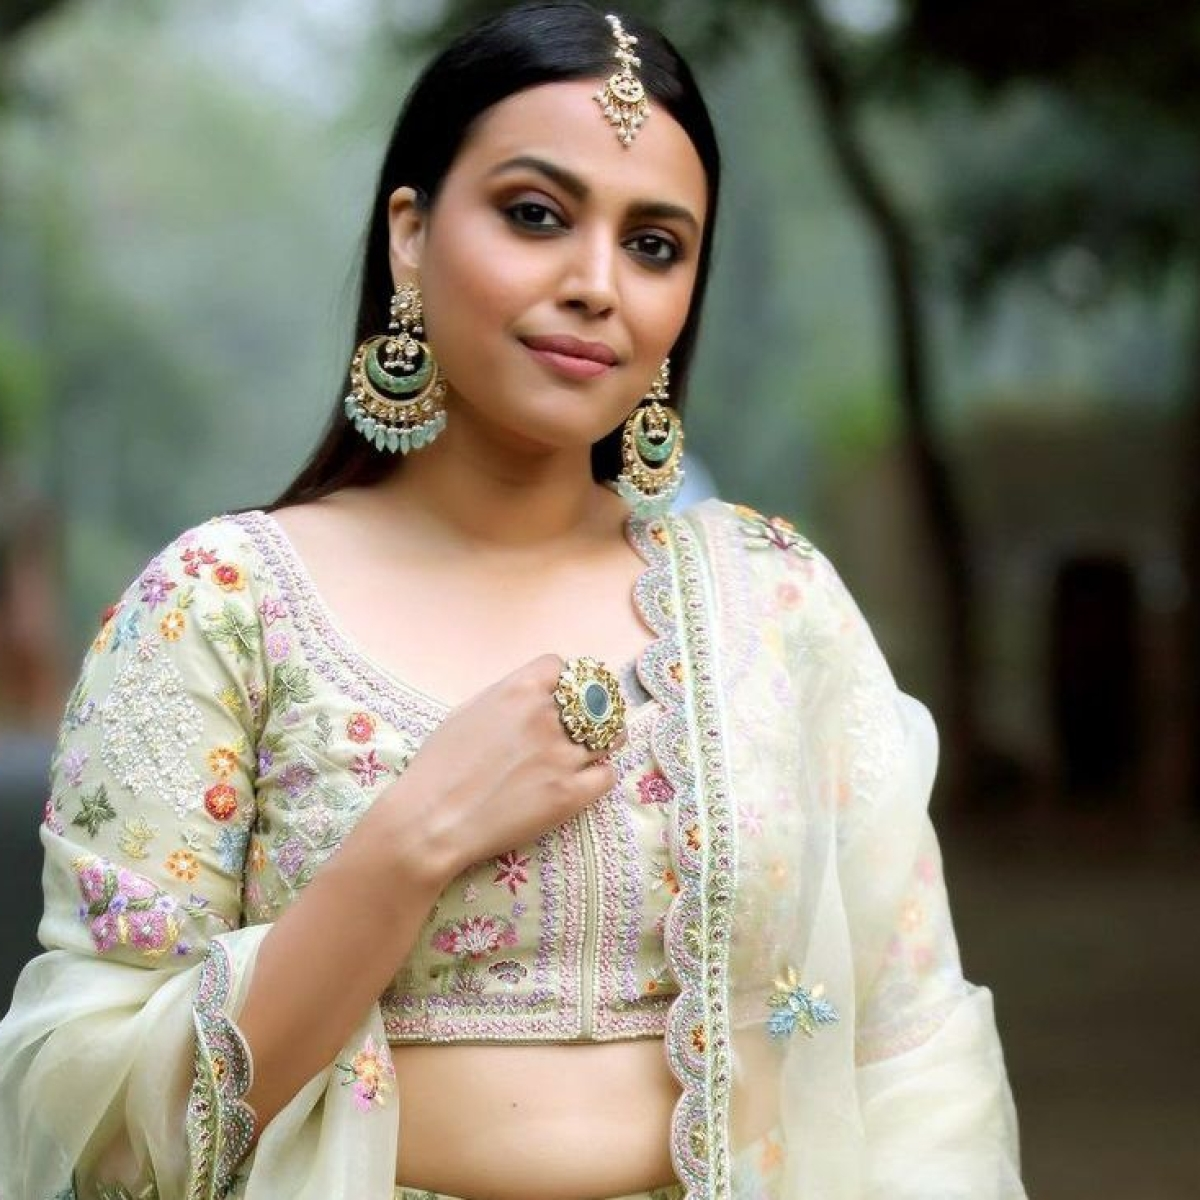 Swara Bhasker calls love-jihad 'product of misogyny' after MP govt brings Bill with 5 years jail for violators